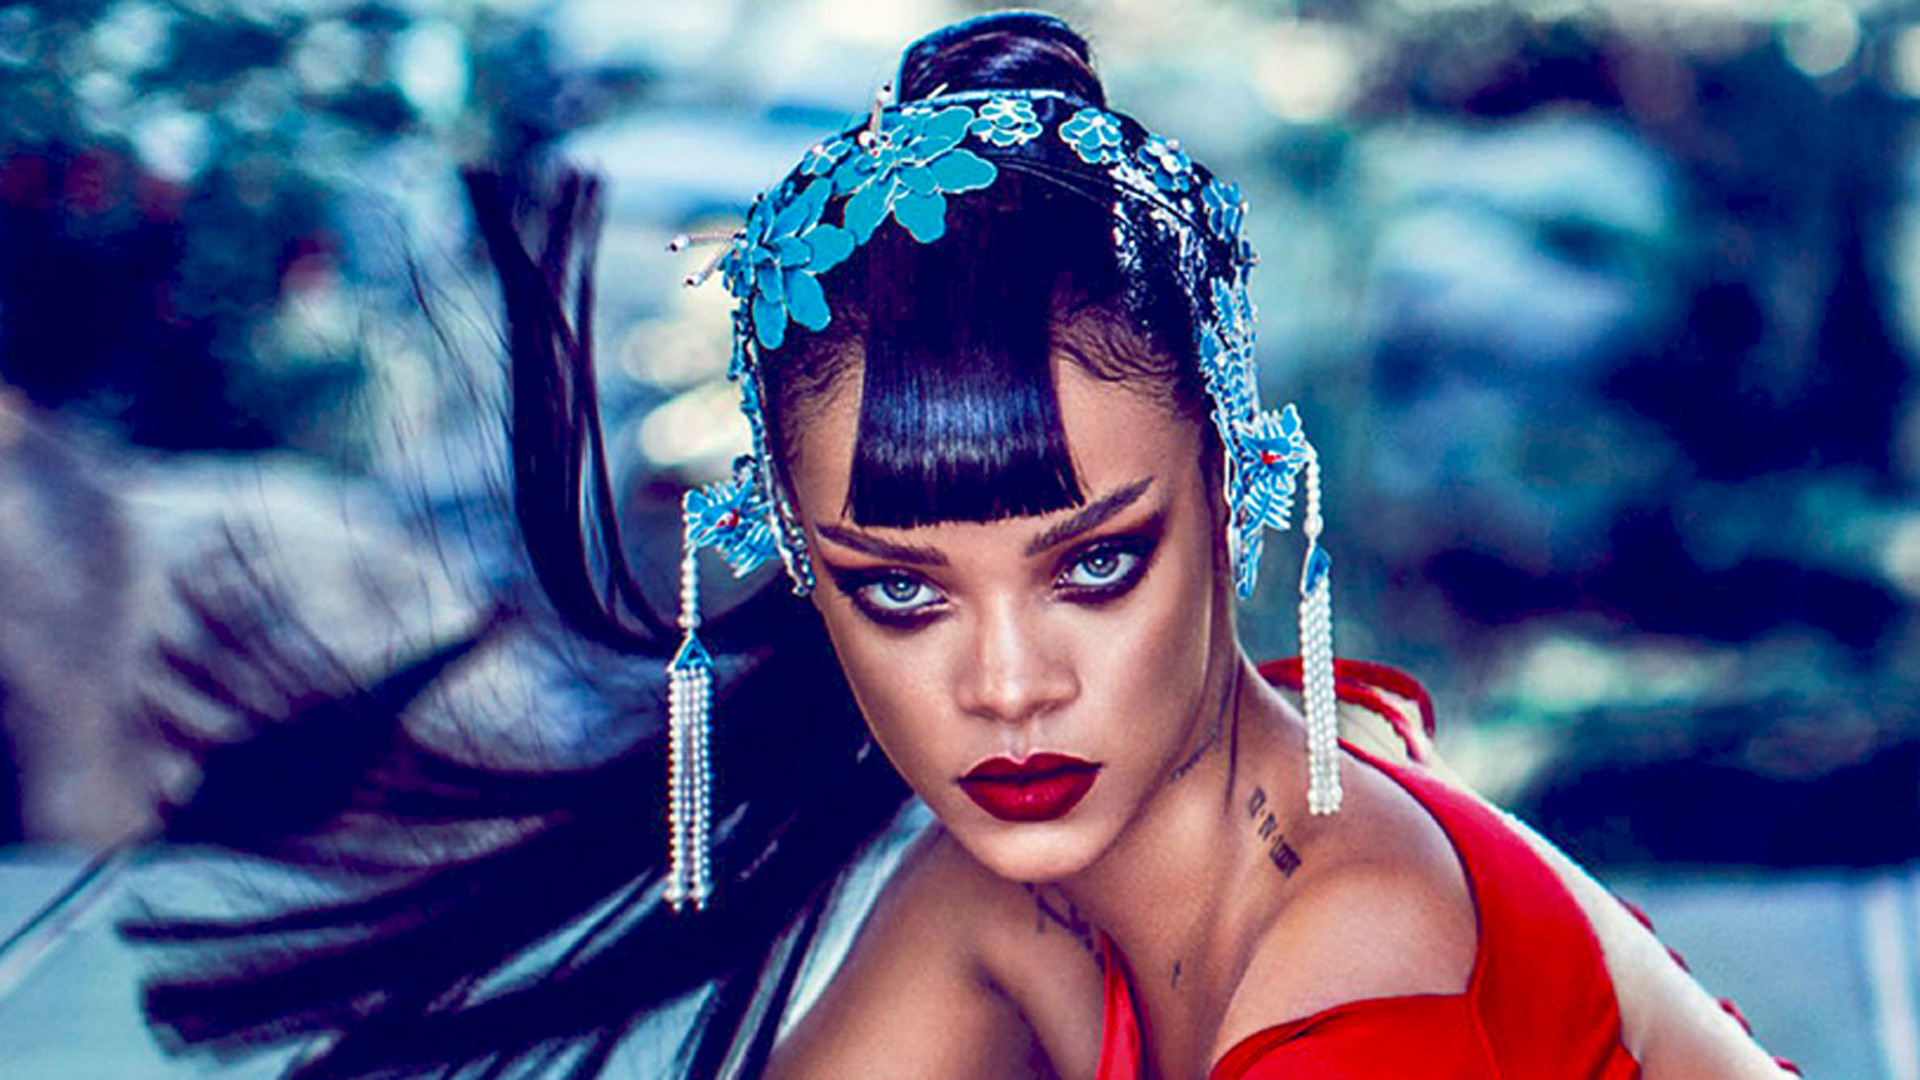 rihanna 2018 wallpapers 183��